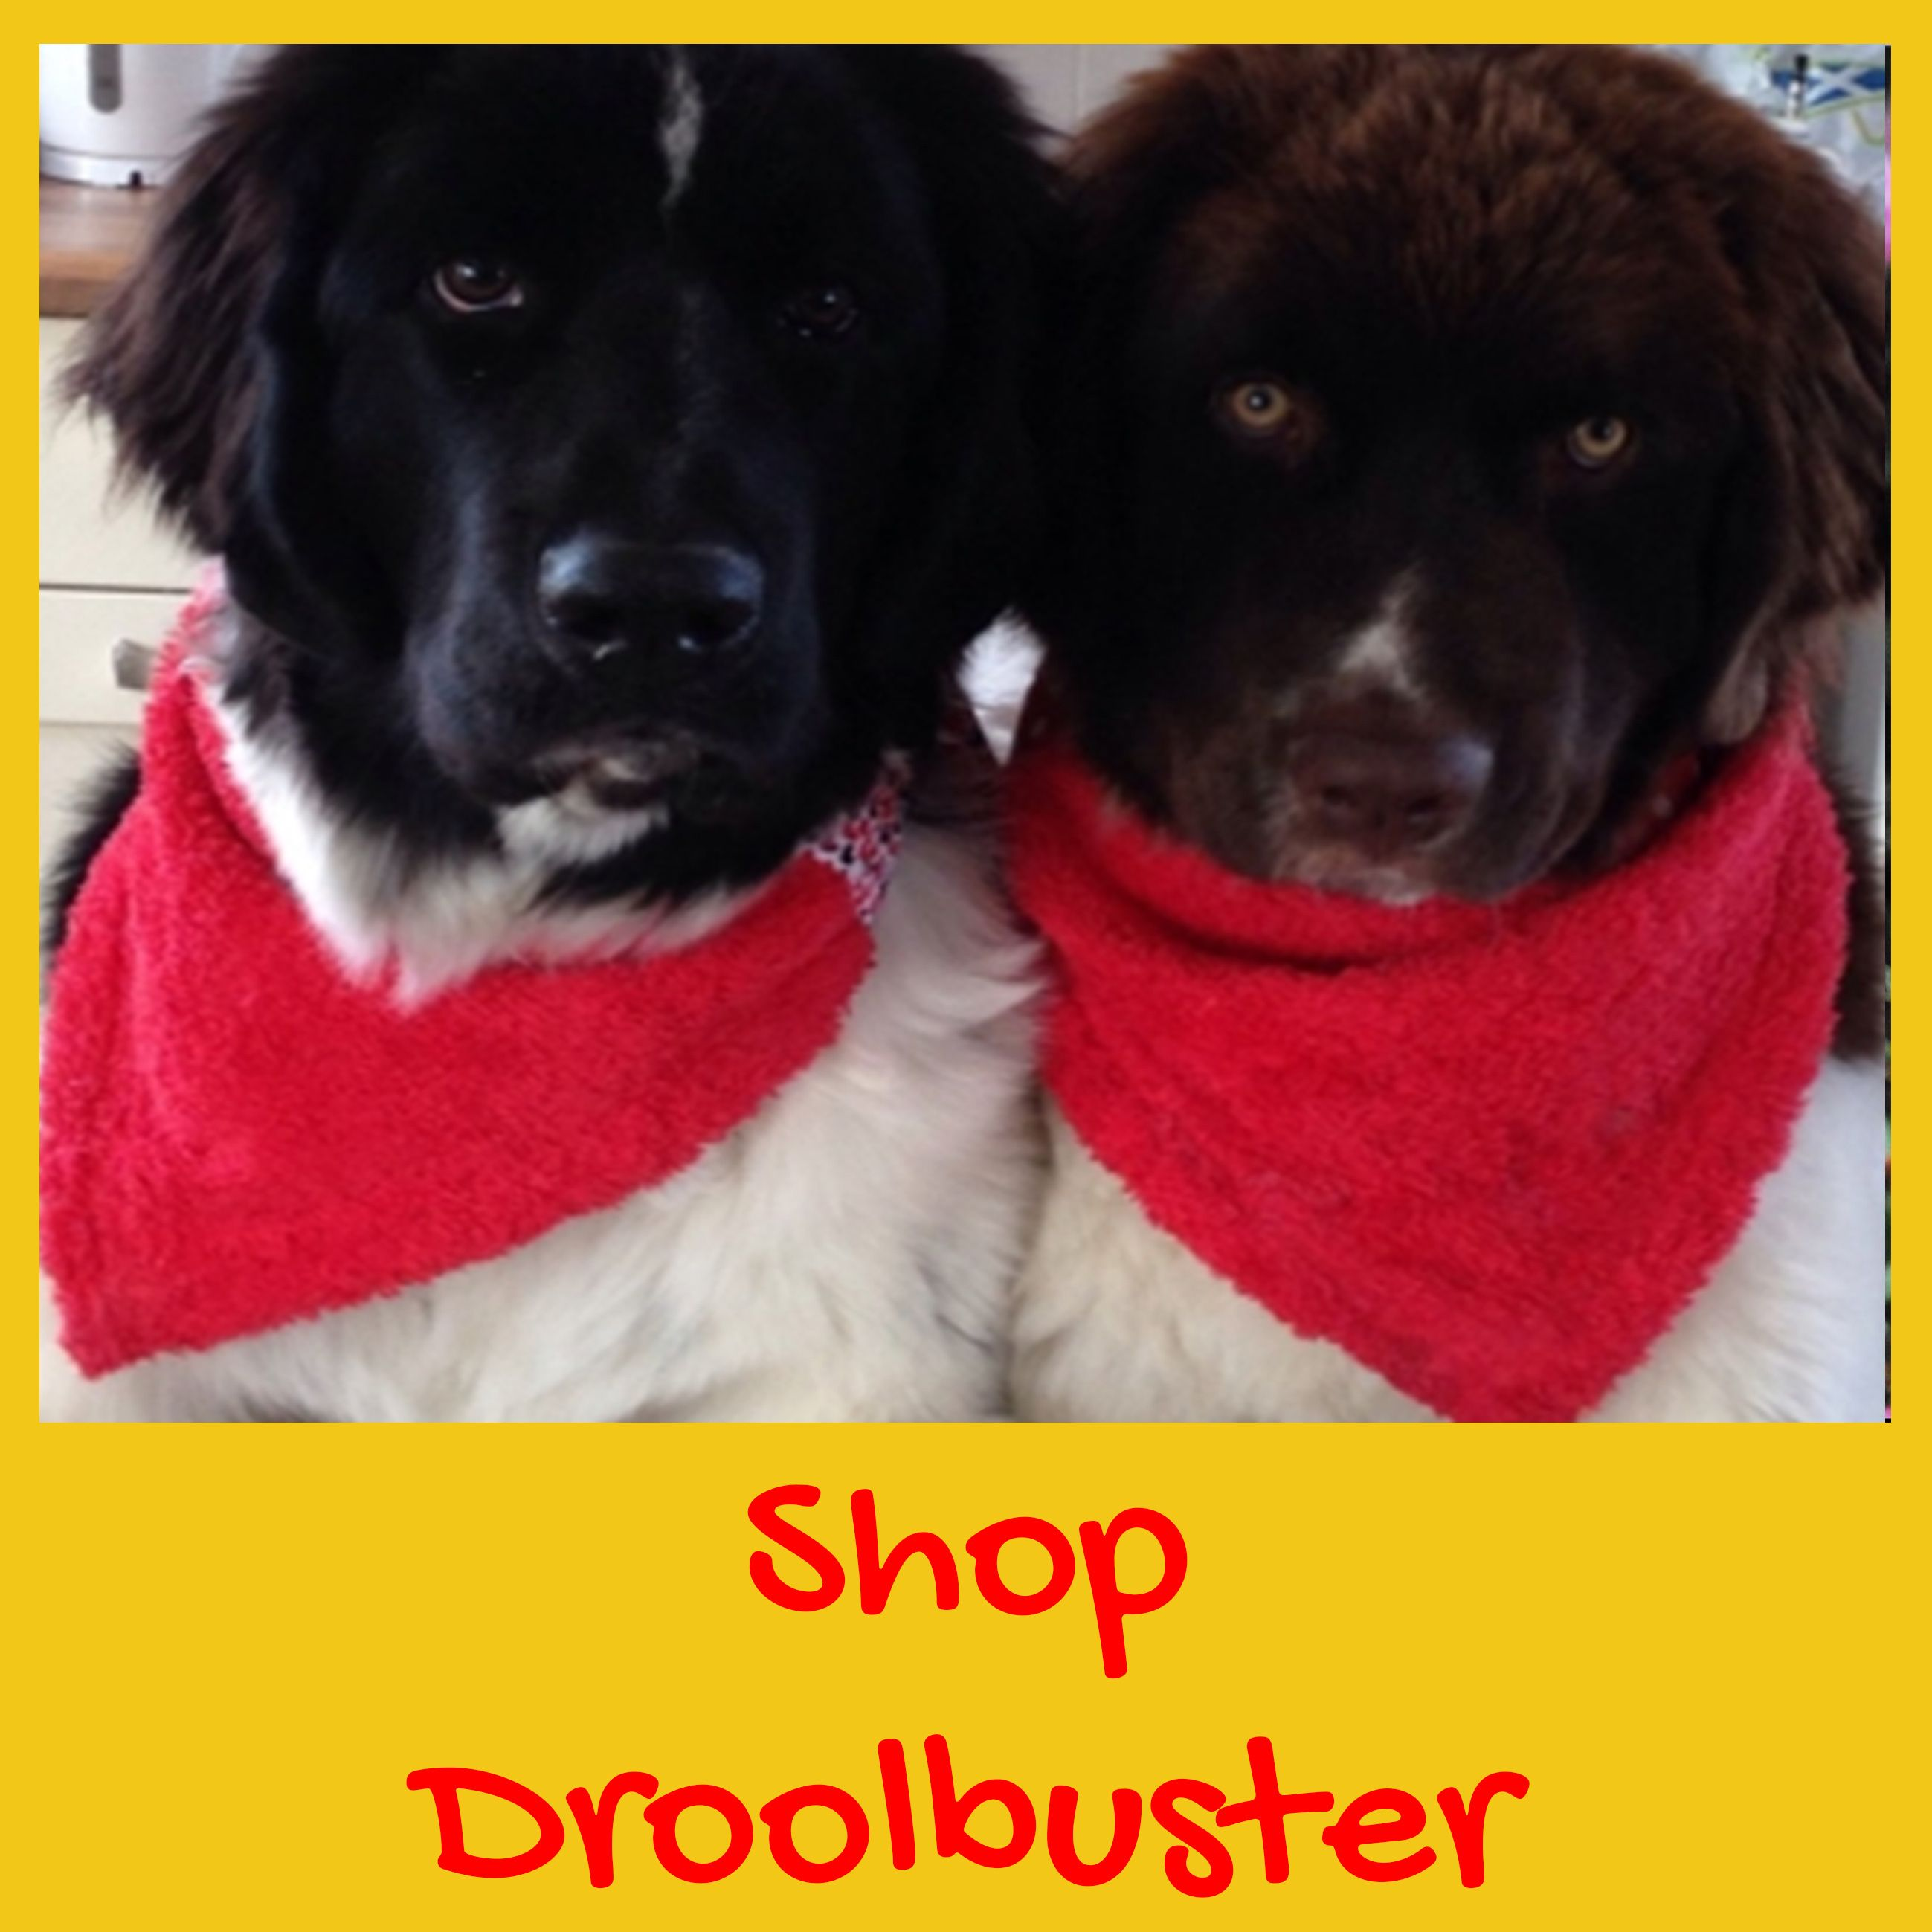 If your dog drools check out our unique Droolbuster dog bib, handmade by Dudiedog Bandanas UK.